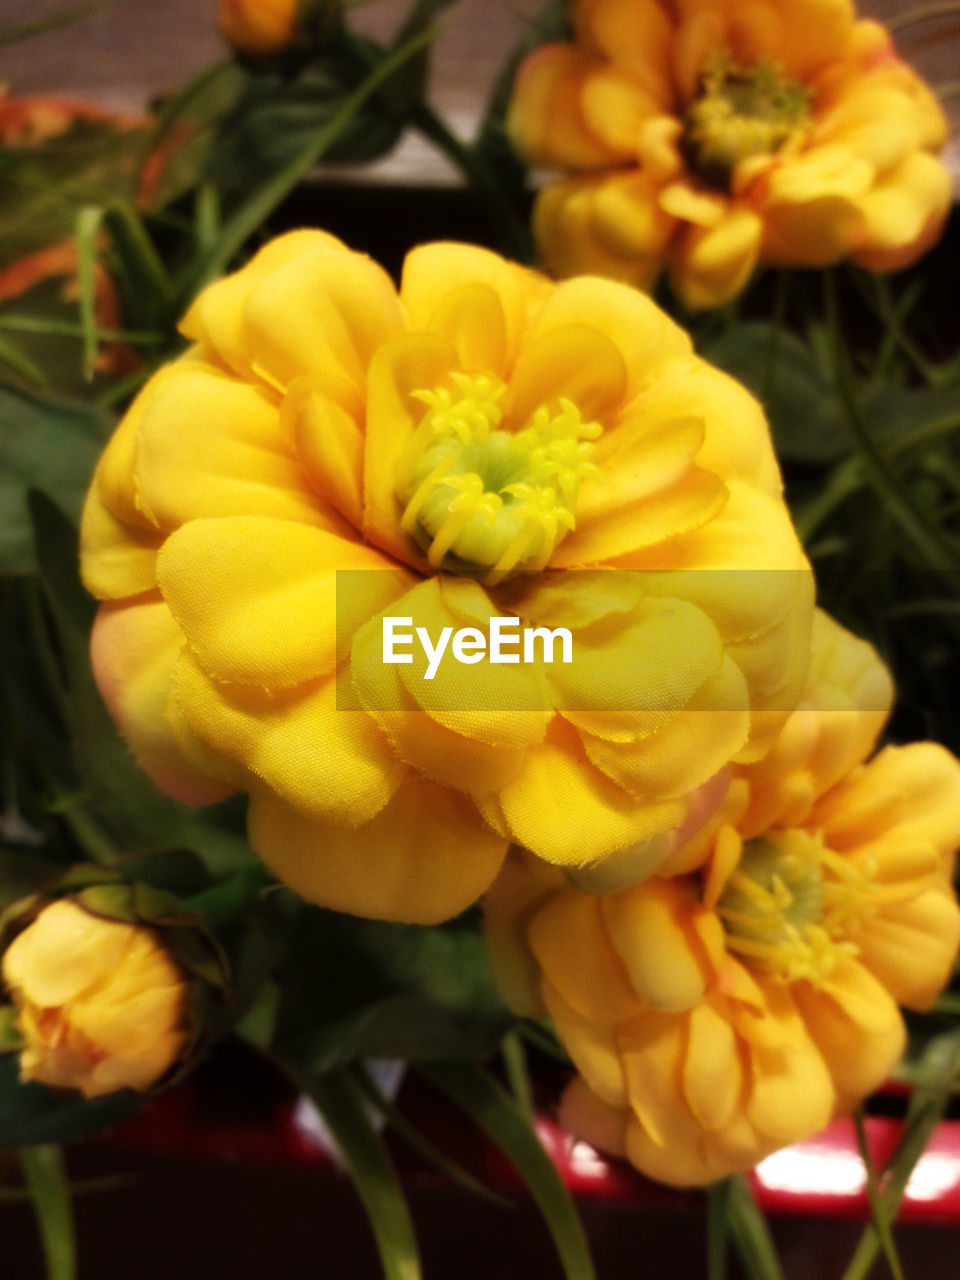 flower, yellow, petal, beauty in nature, freshness, flower head, fragility, nature, plant, growth, no people, outdoors, blooming, close-up, day